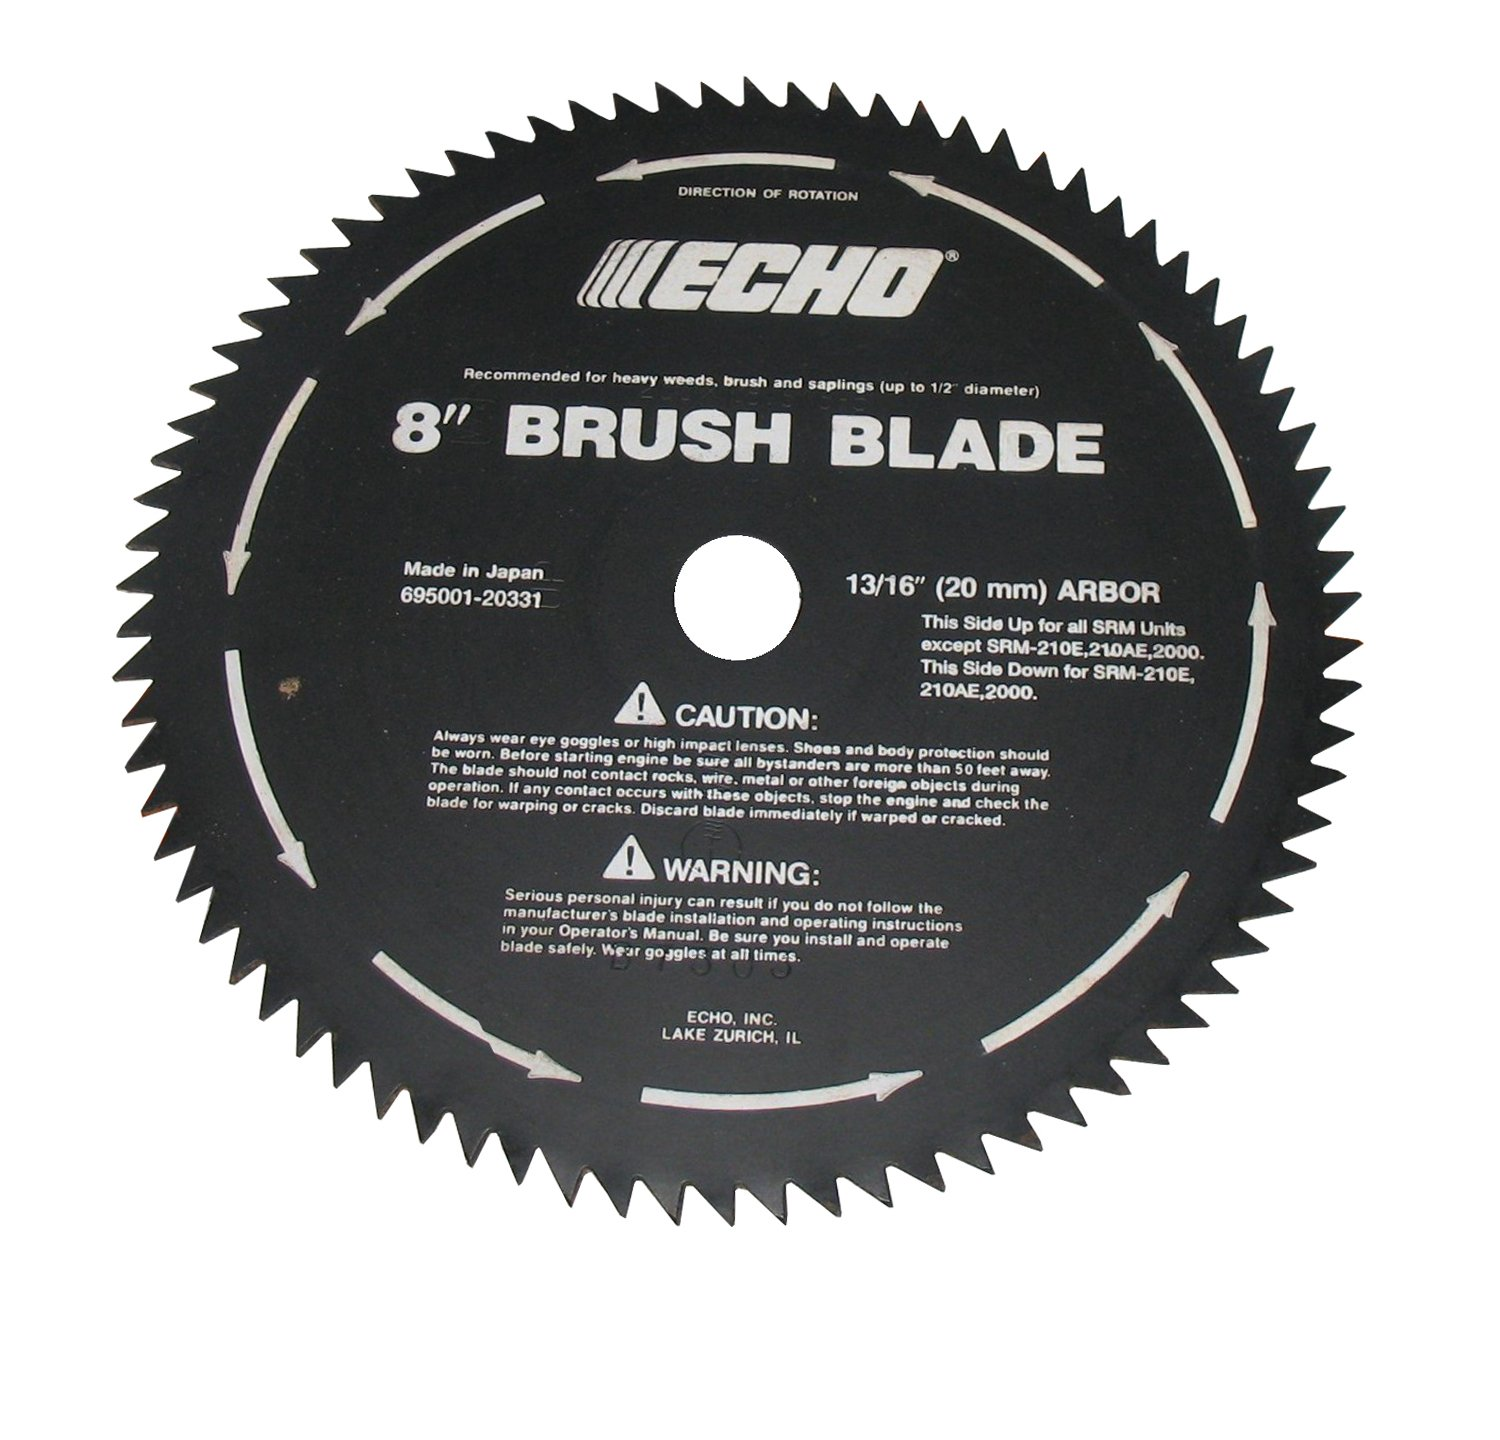 Amazon echo 69500120331 80 tooth brush blade circular saw amazon echo 69500120331 80 tooth brush blade circular saw blades garden outdoor keyboard keysfo Choice Image